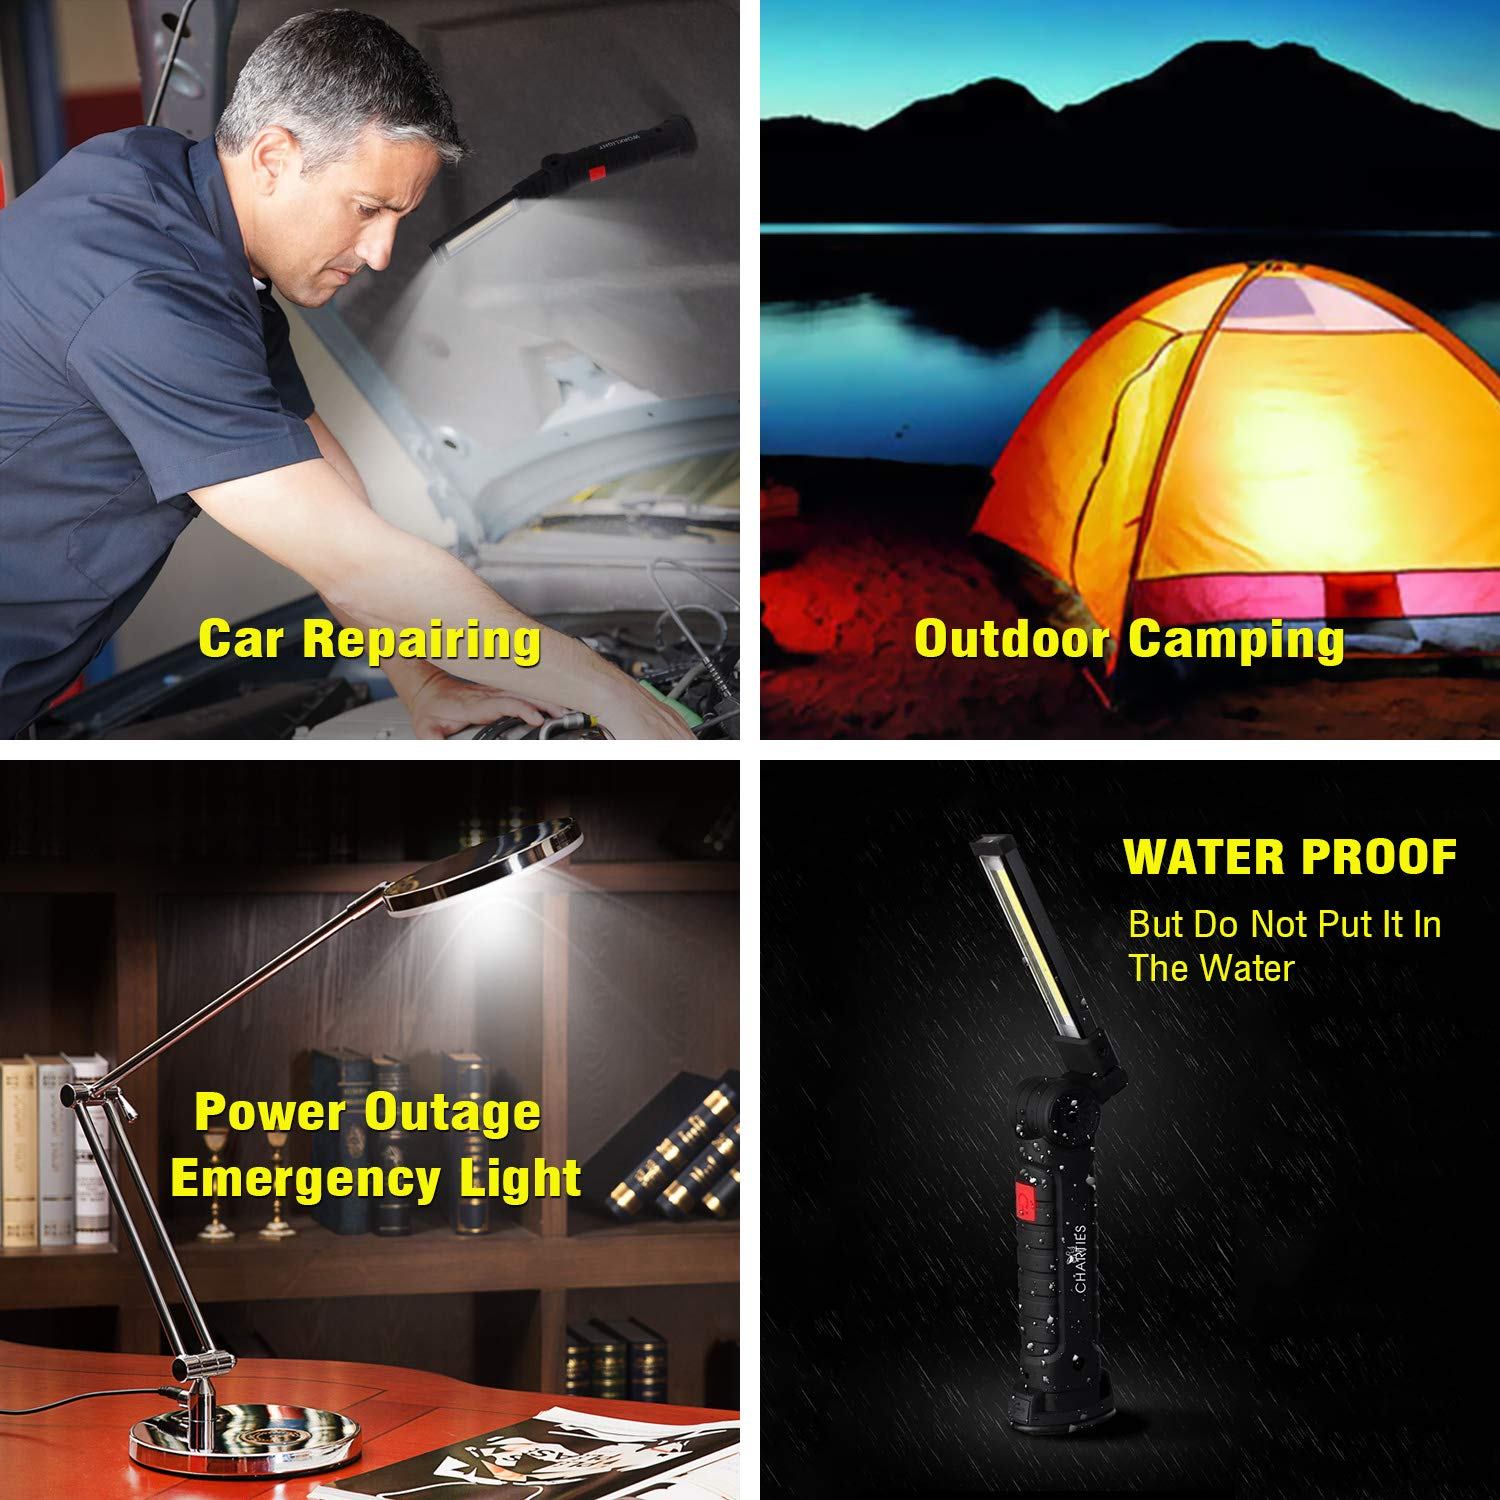 LED Work Light Rechargeable with Magnetic Base & Hook, Collapsible COB Flashlight-Inspection Lamp with 5 Lighting Modes 360°Rotate for Car Repairing, Home Emergency Light and Outdoor Camping(Large)